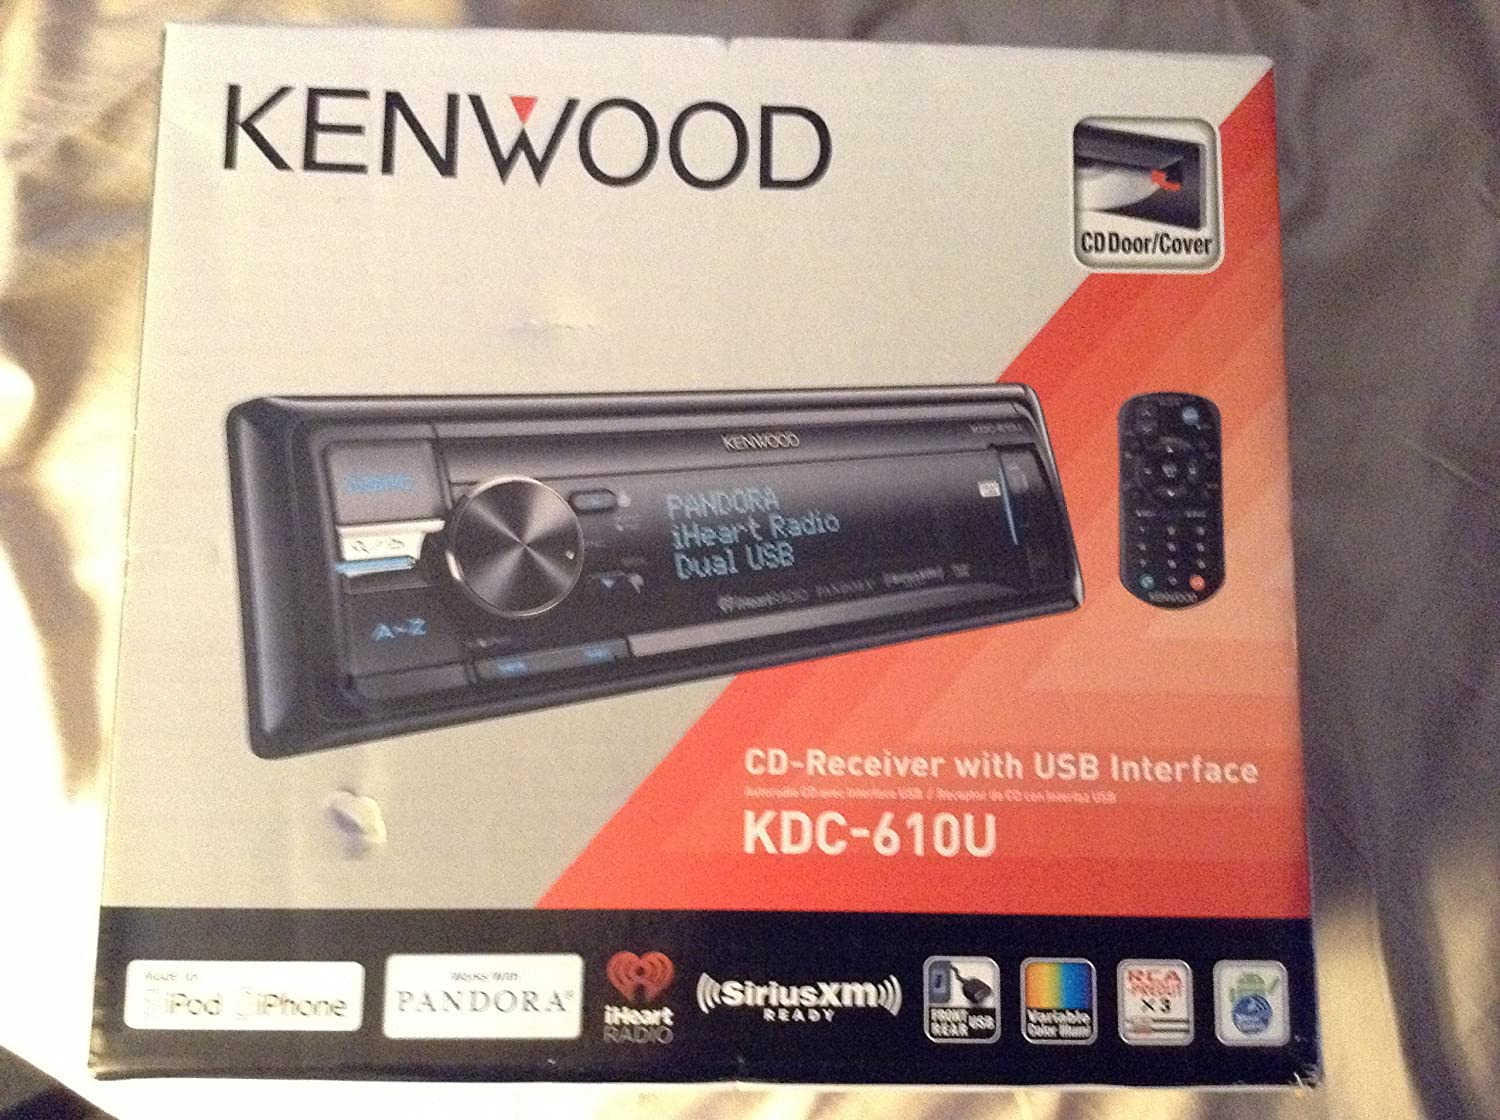 91ms9JUyklL._SL1500_ amazon com kenwood kdc 610u cd player with dual usb multi color kenwood kdc 610u wiring diagram at bayanpartner.co